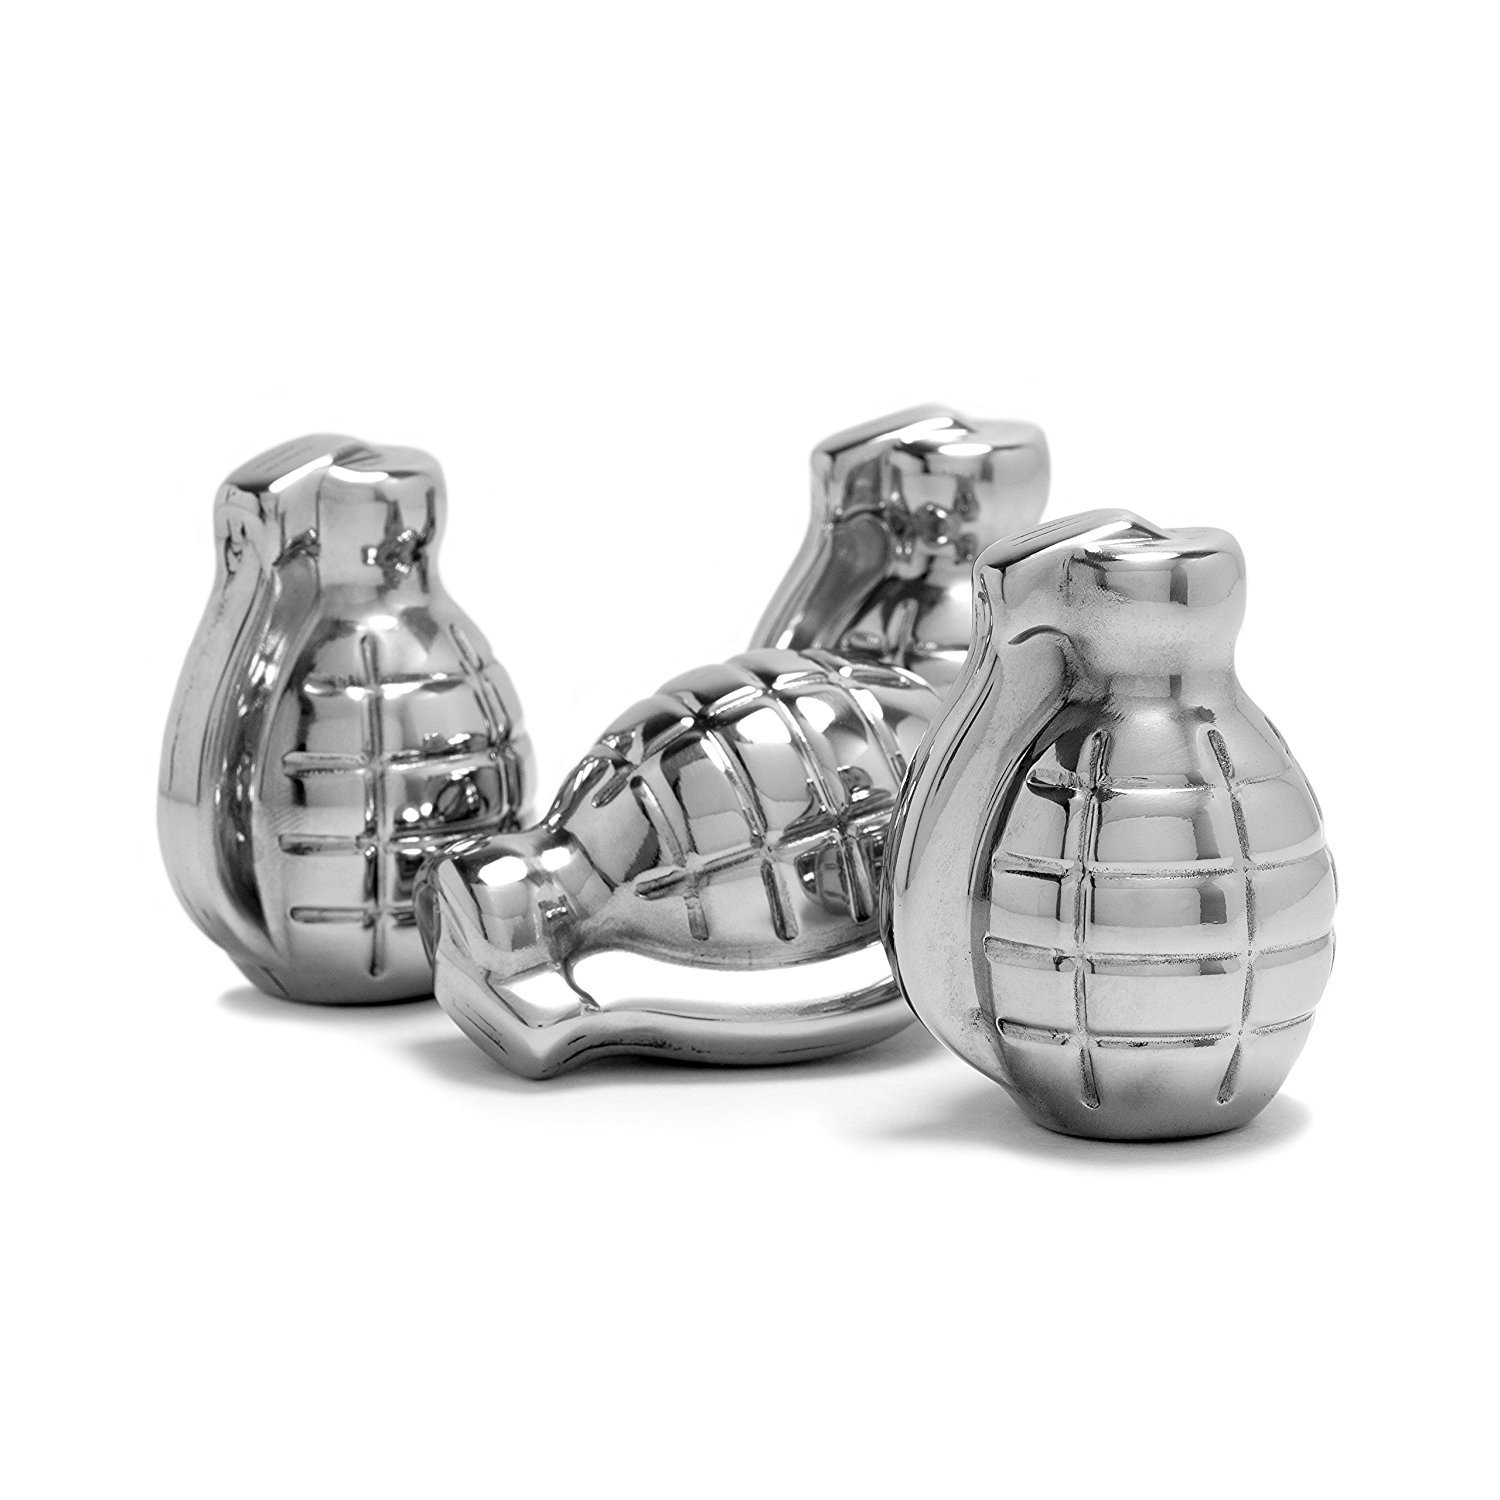 Whiskey Stones Grenade Shaped Stainless Steel with Storage Bag (Set of 4) by BarMe (Image #3)